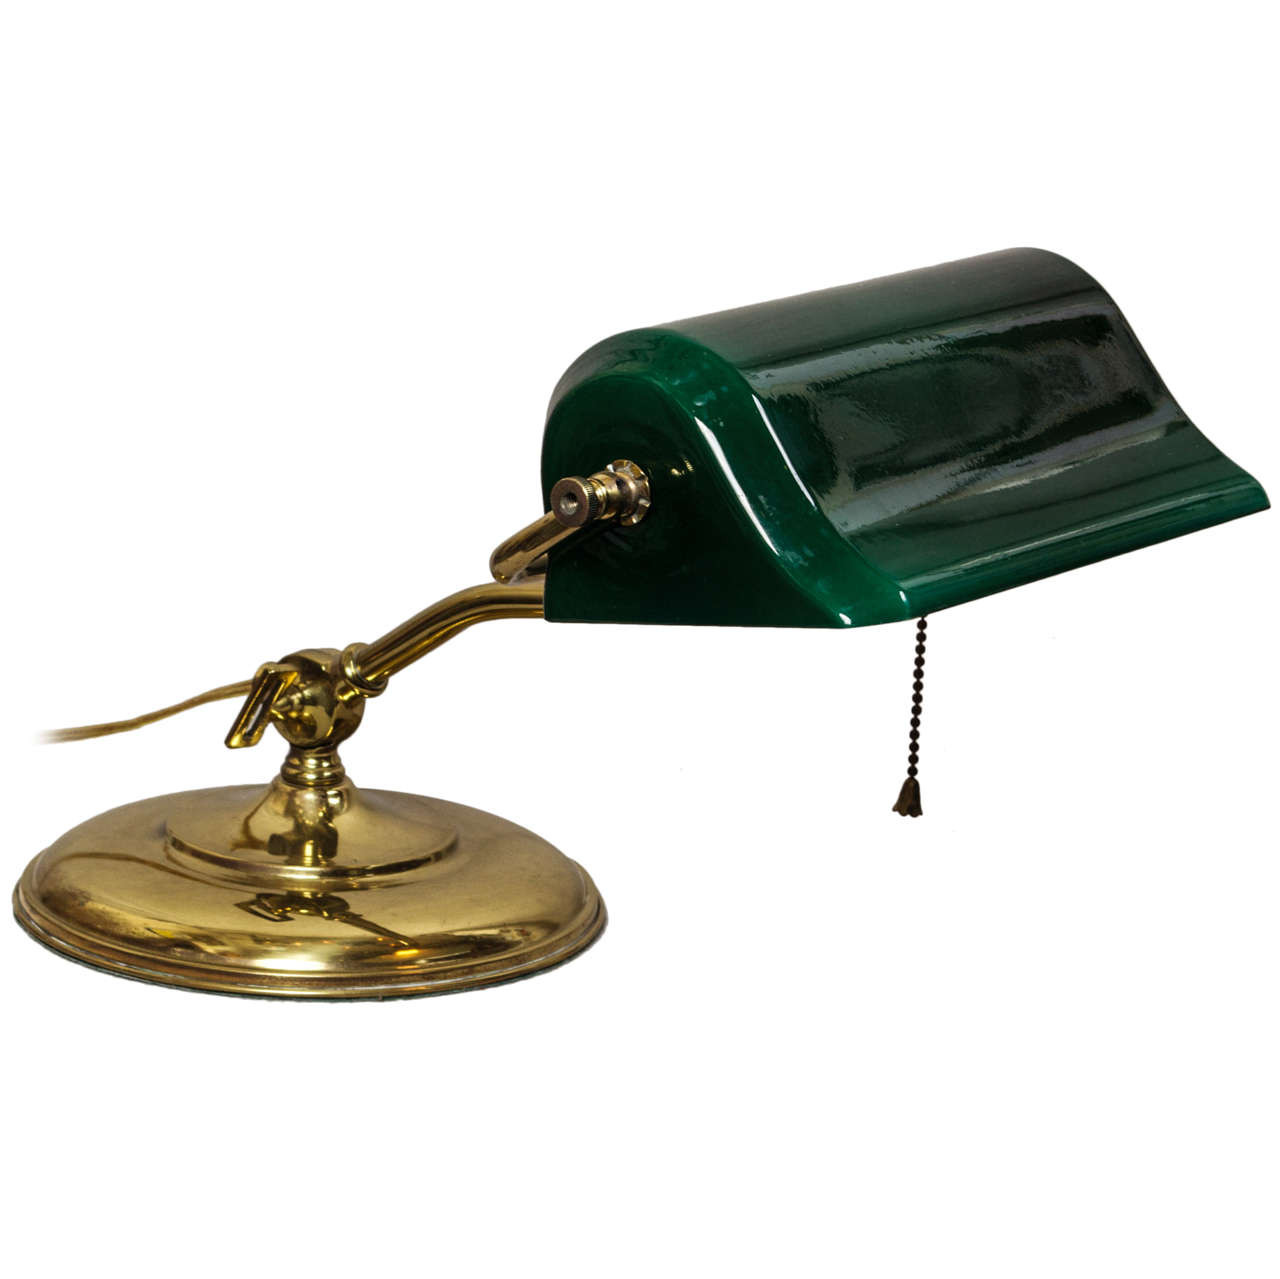 Best ideas about Green Desk Lamp . Save or Pin Banker s Desk Lamp with Cased Green Glass Shade at 1stdibs Now.